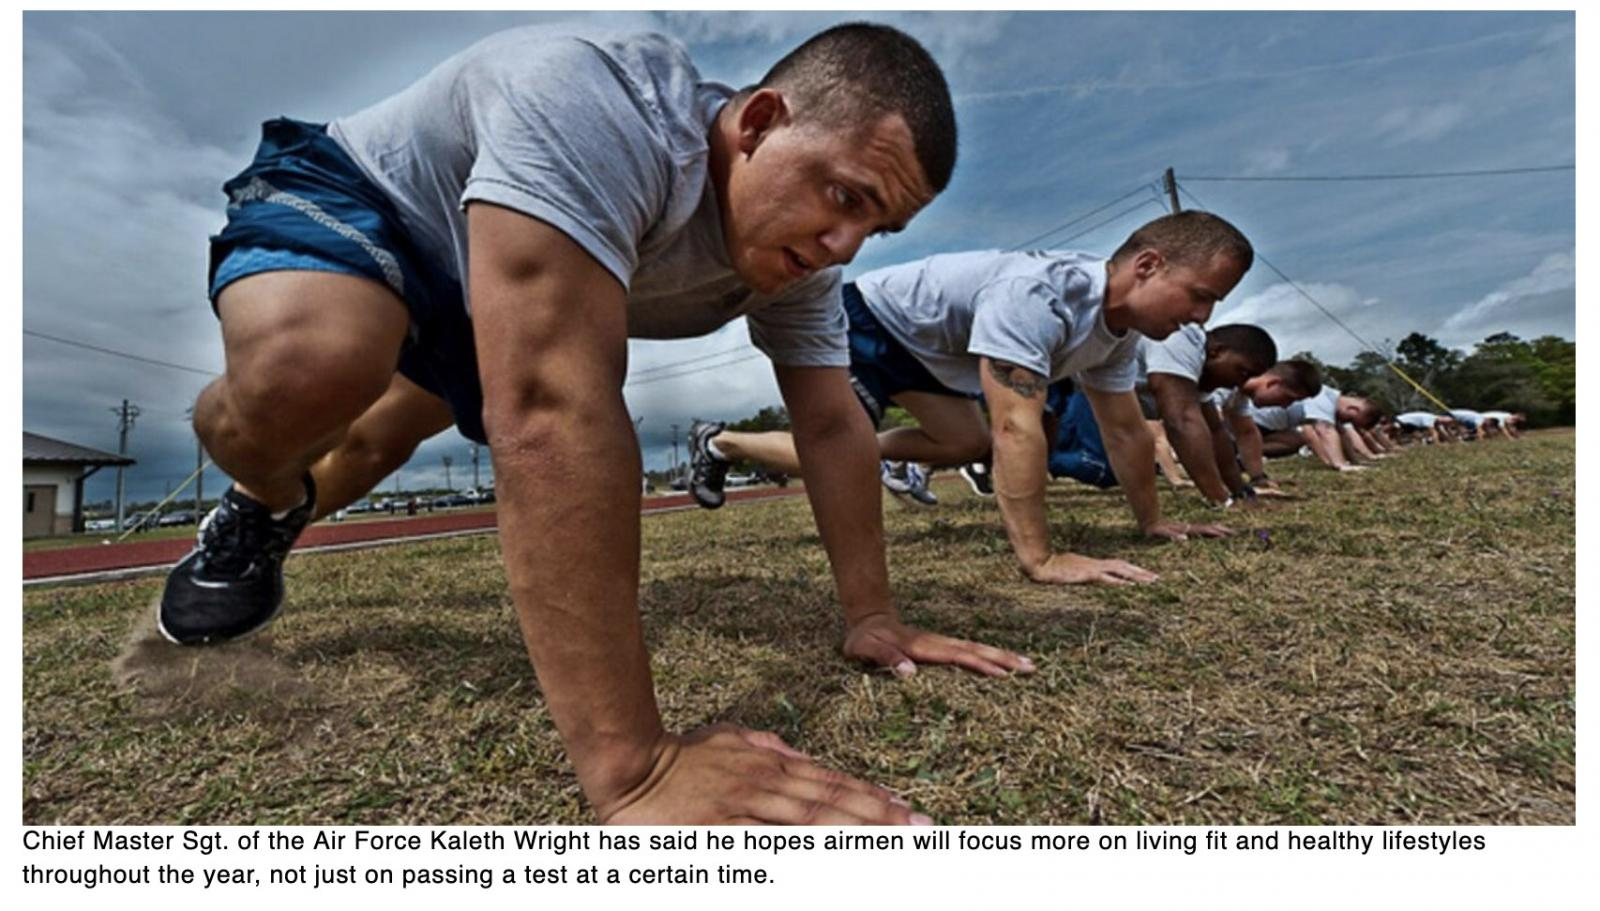 Can digital fitness coaching get airmen in shape? The Air Force wants to know